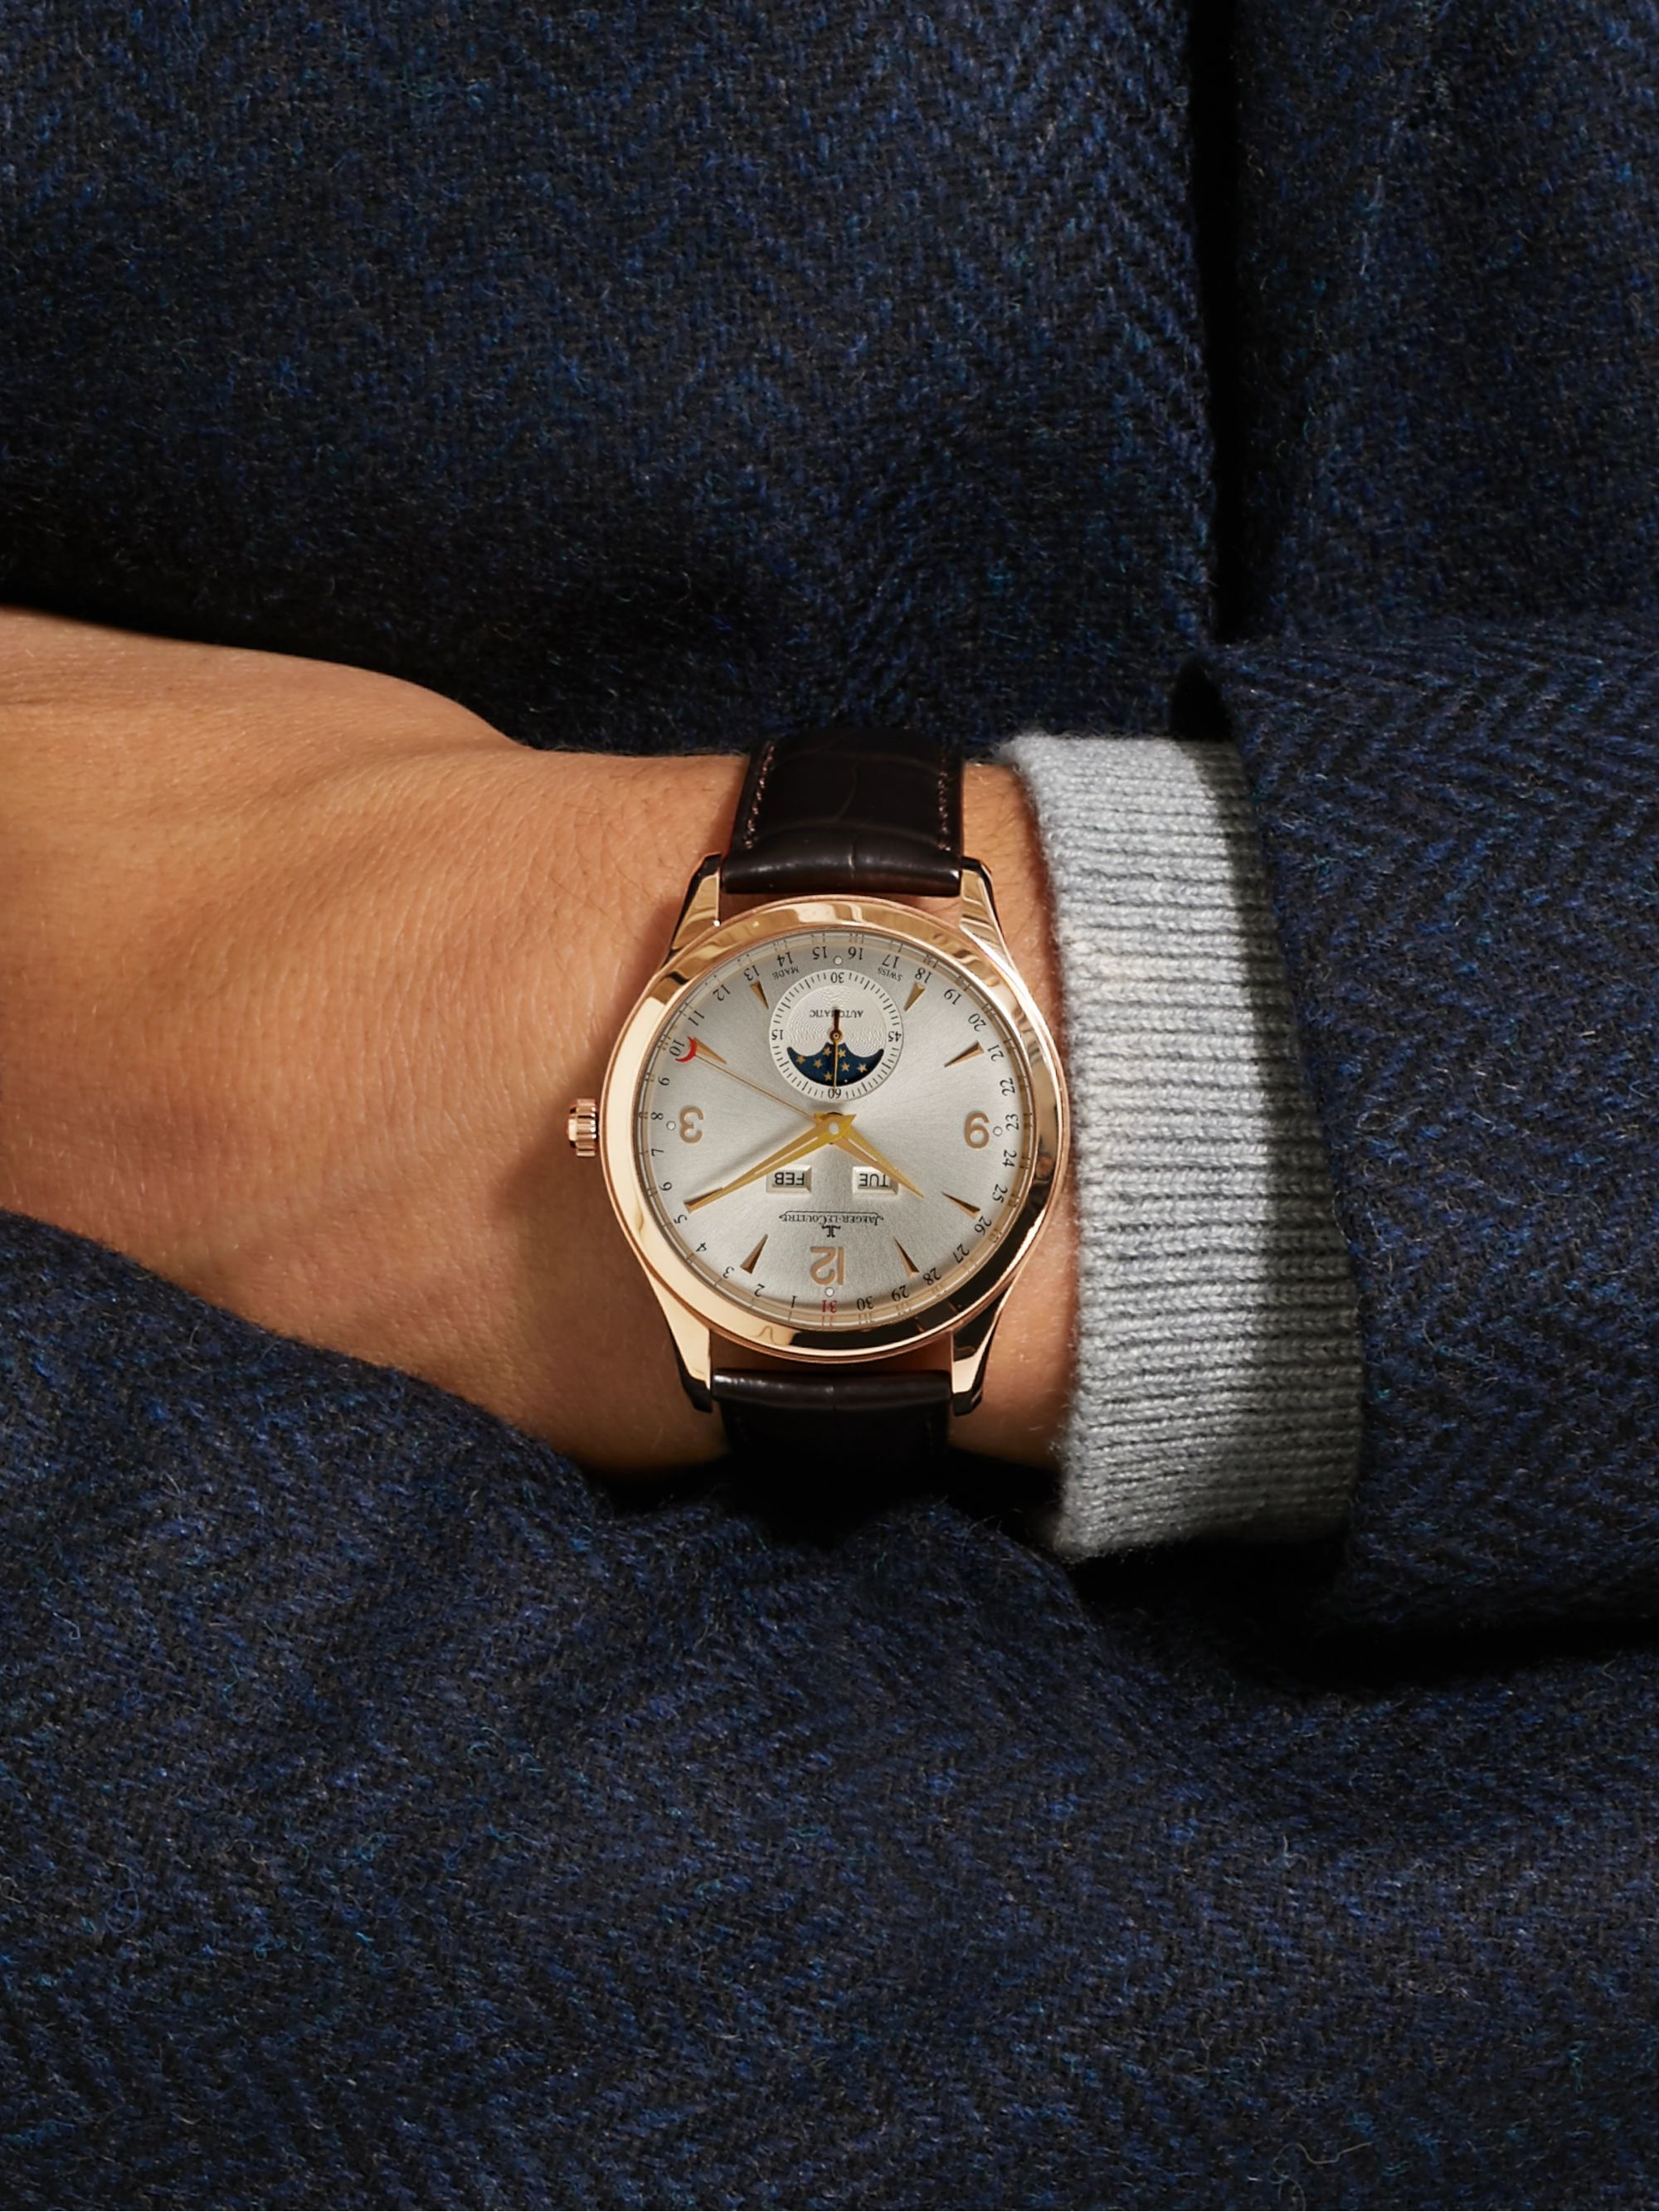 Jaeger-LeCoultre Master Calendar Automatic 39mm 18-Karat Rose Gold and Alligator Watch, Ref. No. Q1552520